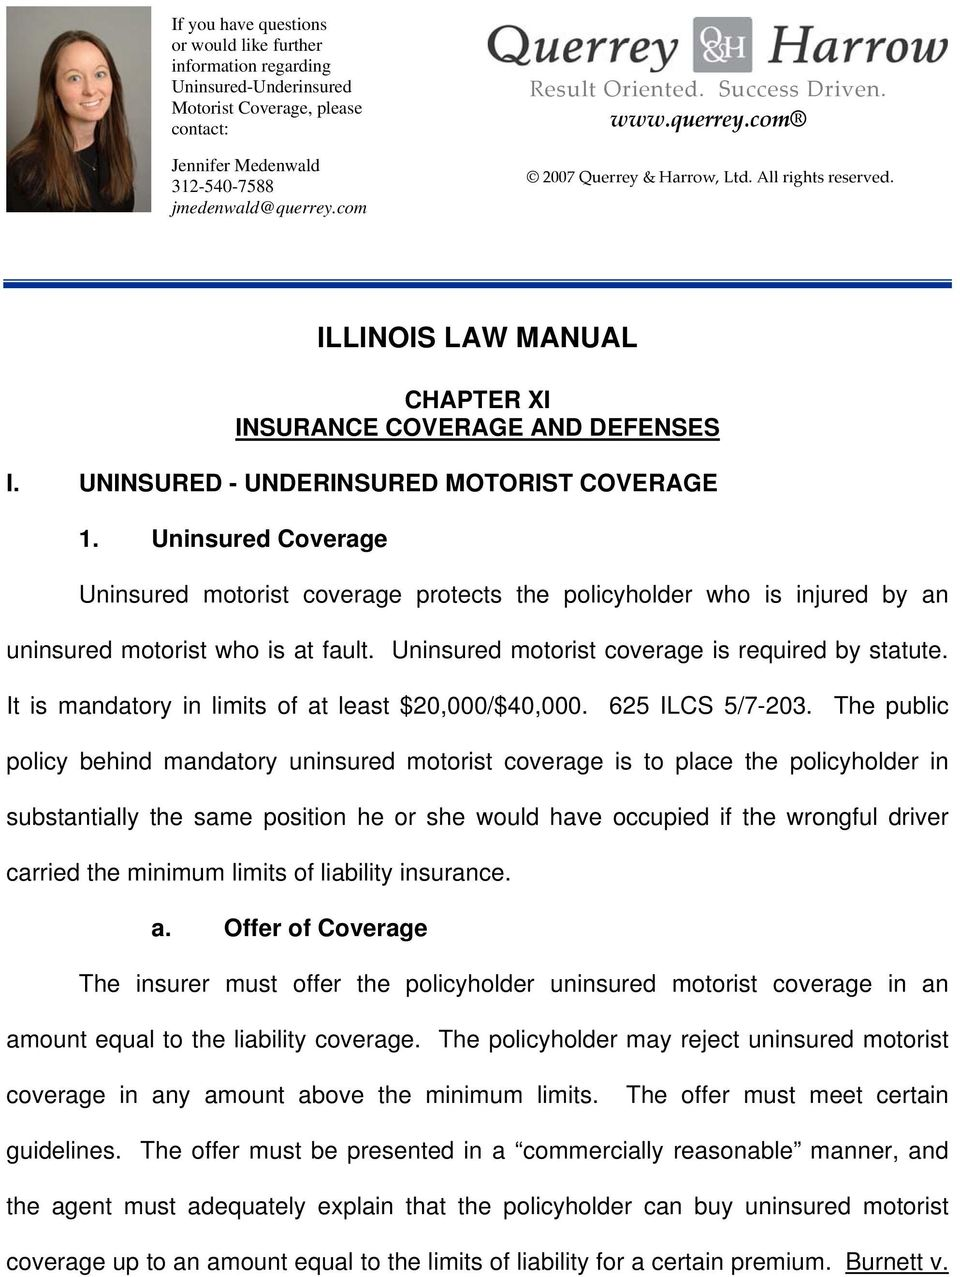 Uninsured Coverage Uninsured motorist coverage protects the policyholder who is injured by an uninsured motorist who is at fault. Uninsured motorist coverage is required by statute.